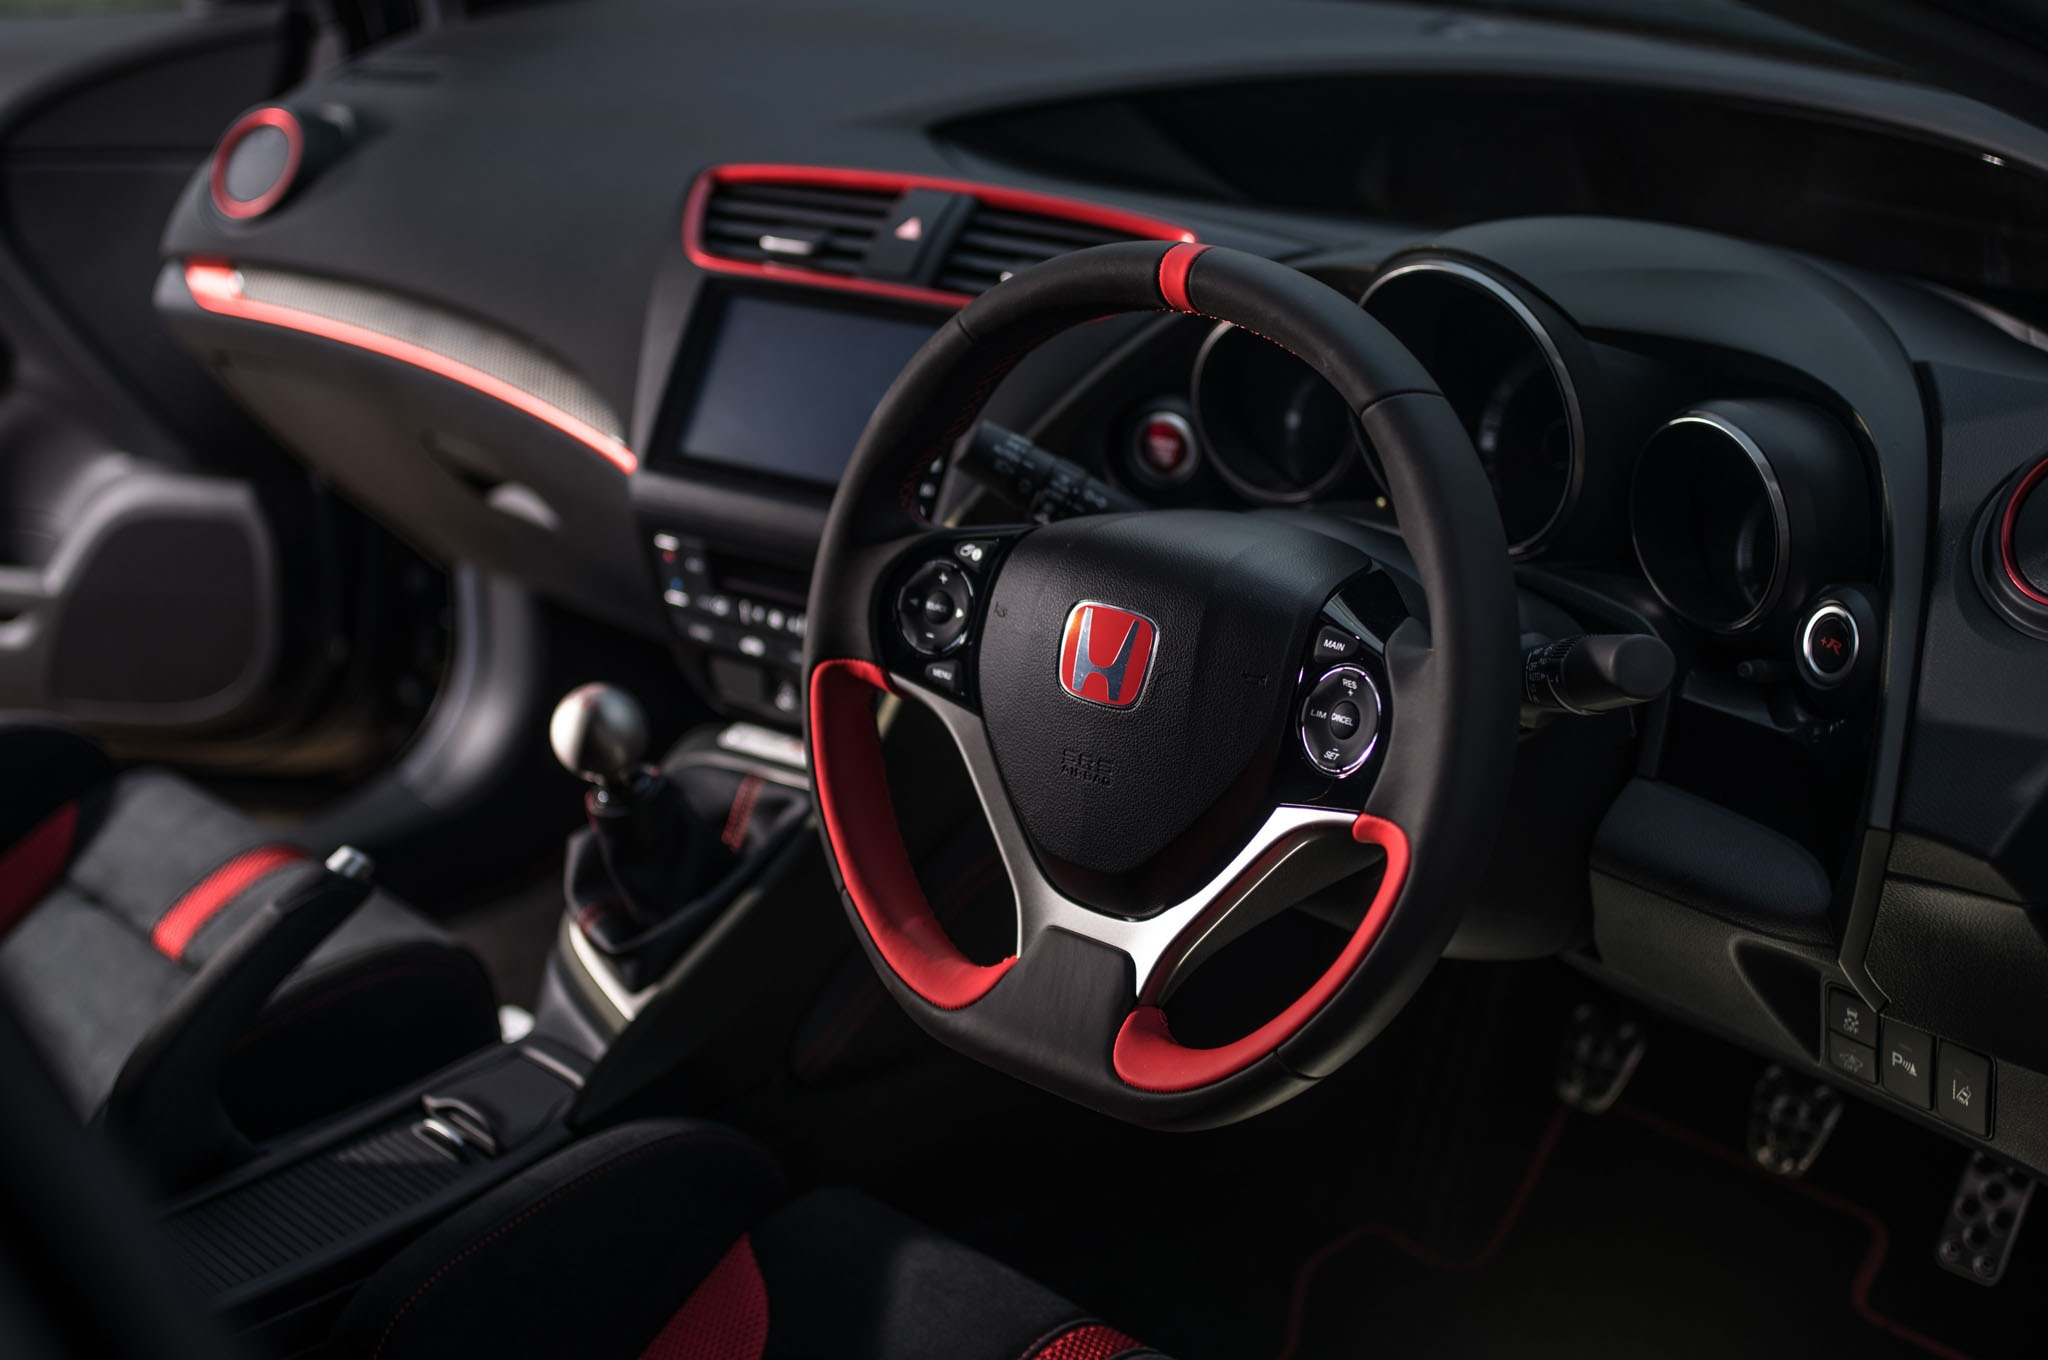 Honda Civic Type R Black Edition Steering Wheel